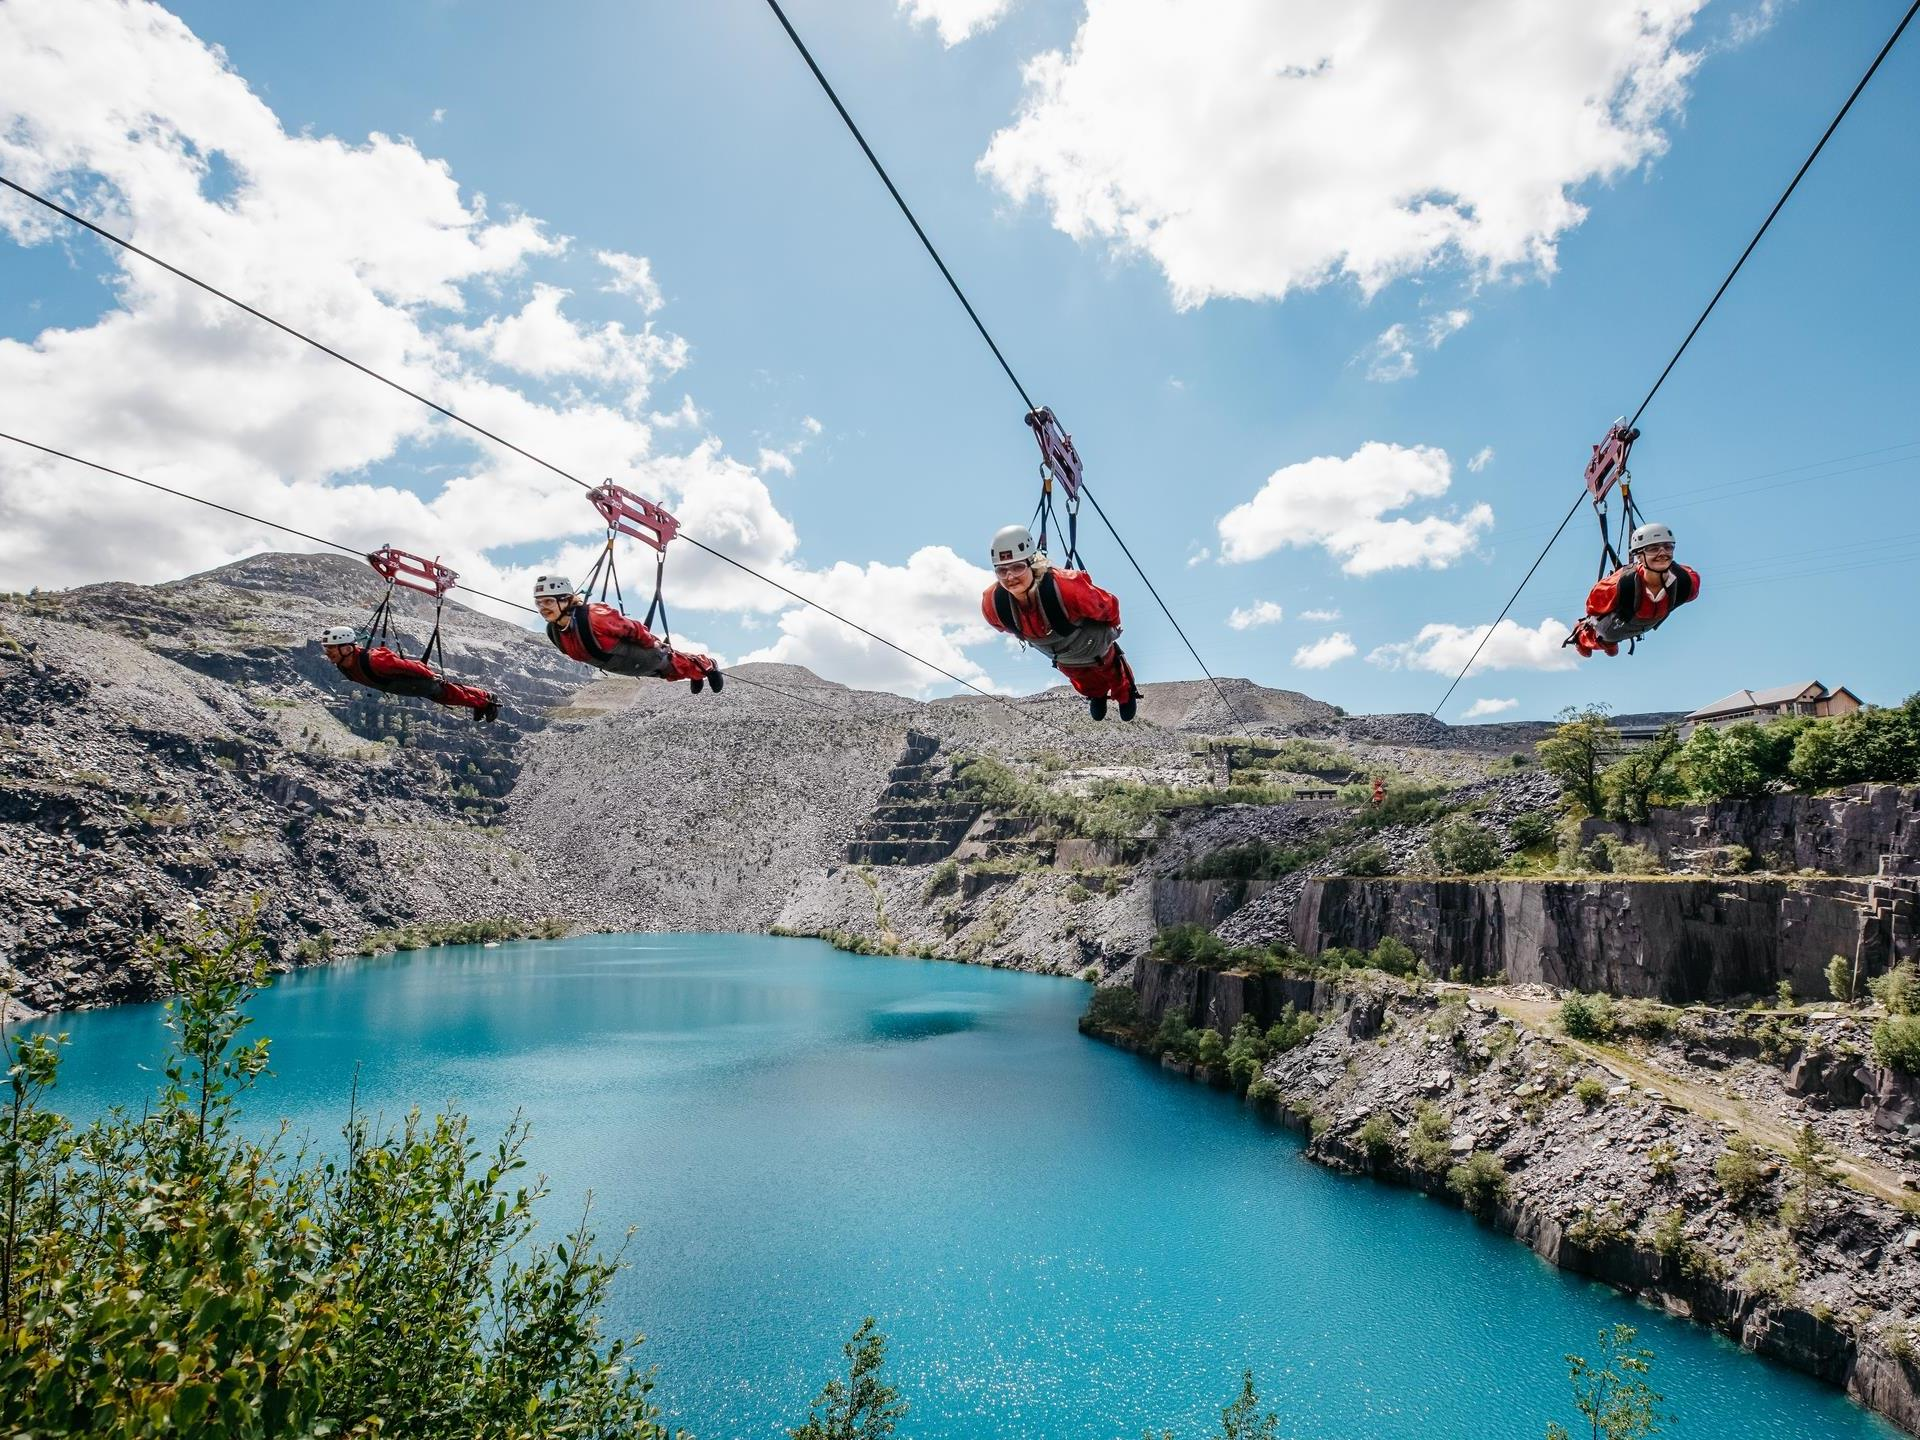 Velocity 2, the world's fastest zip line